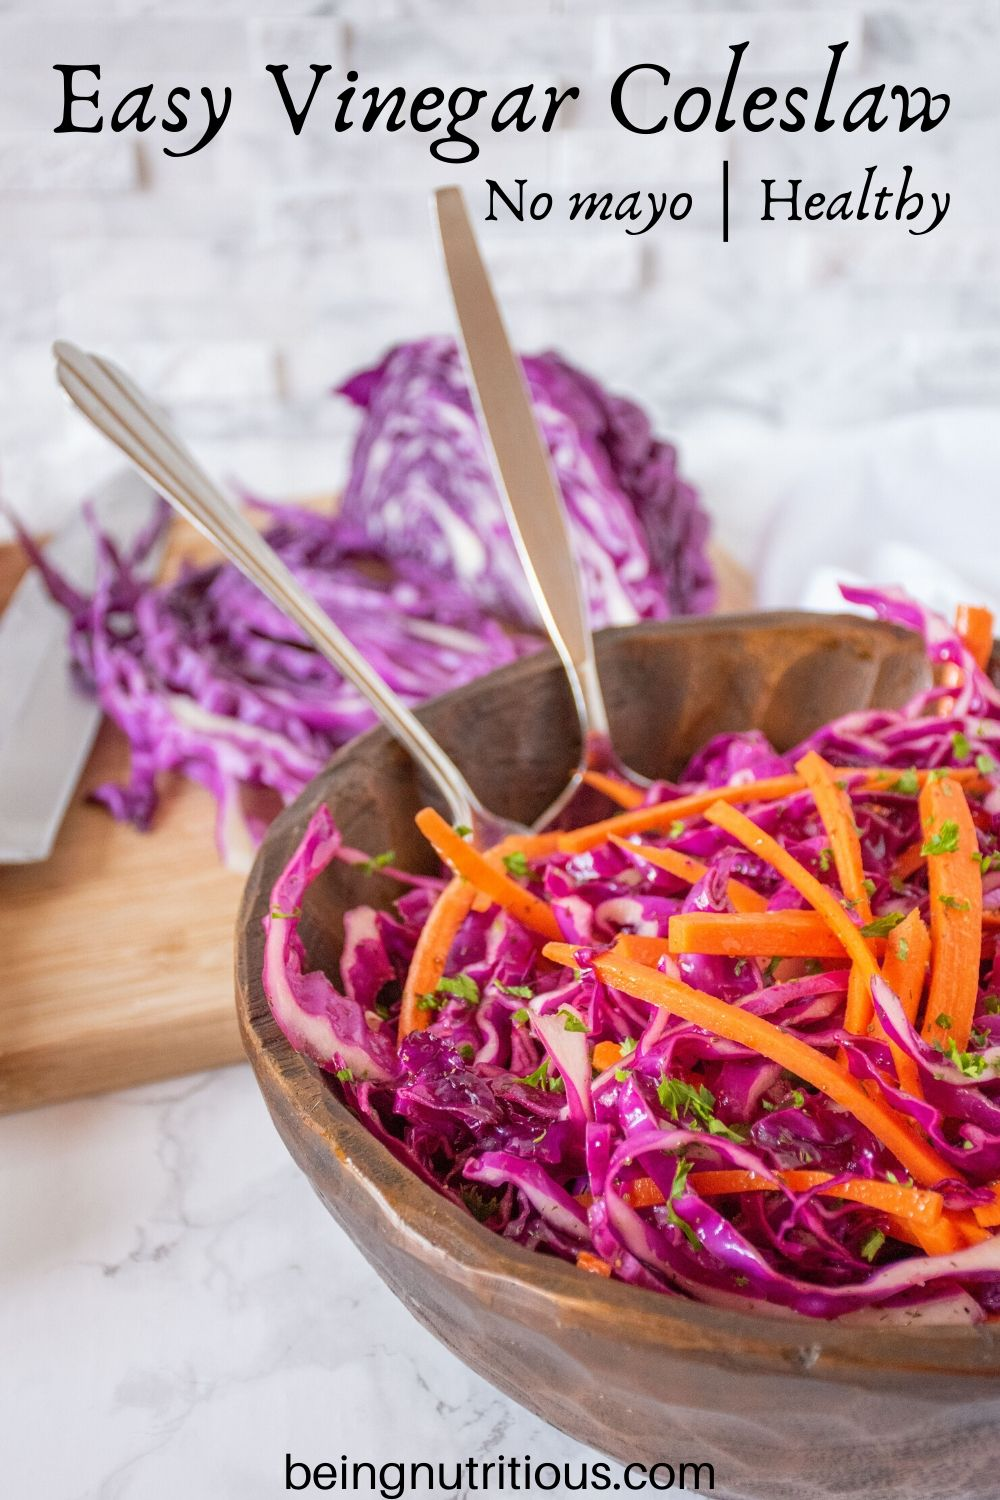 Easy vinegar coleslaw, in a wooden bowl, with shredded purple cabbage on a cutting board visible in the background.